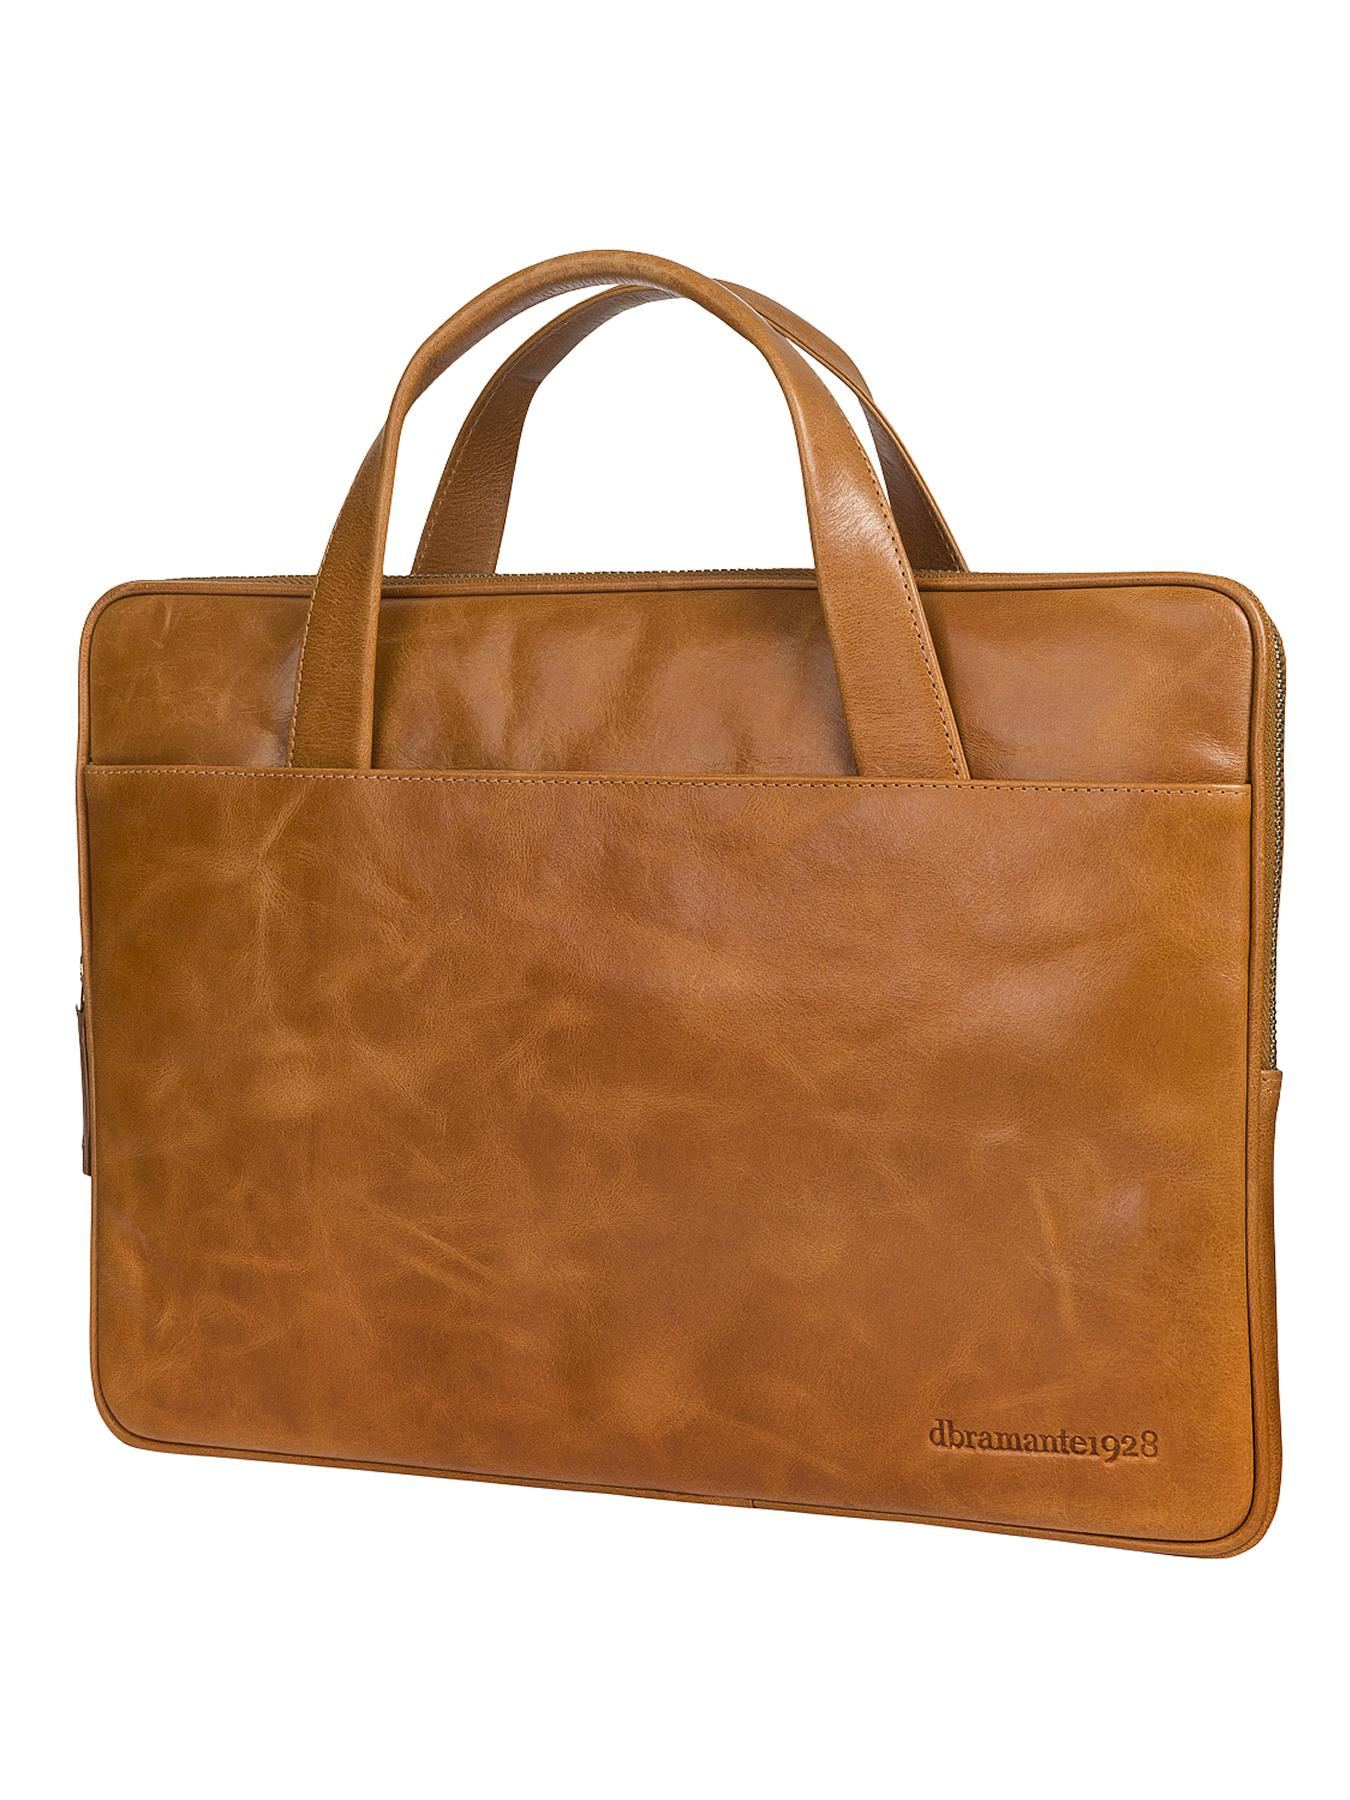 Universal 13 inch Laptop and Macbook Leather Case with Handles  Golden Tan